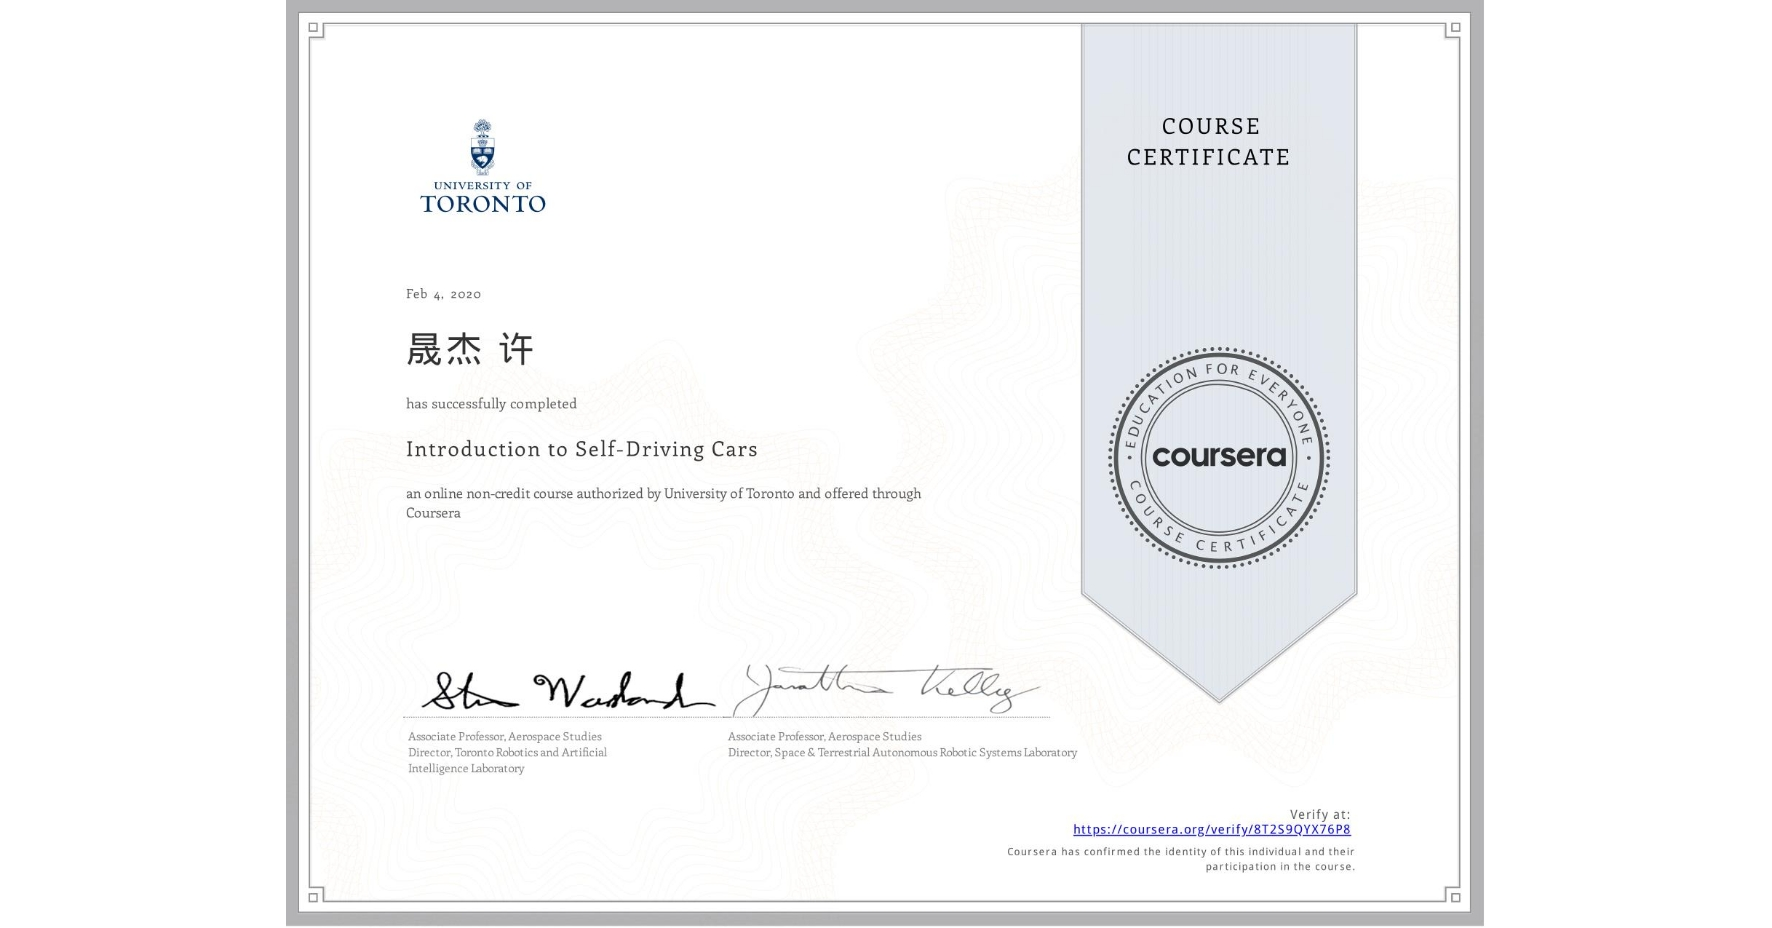 View certificate for 晟杰 许, Introduction to Self-Driving Cars, an online non-credit course authorized by University of Toronto and offered through Coursera